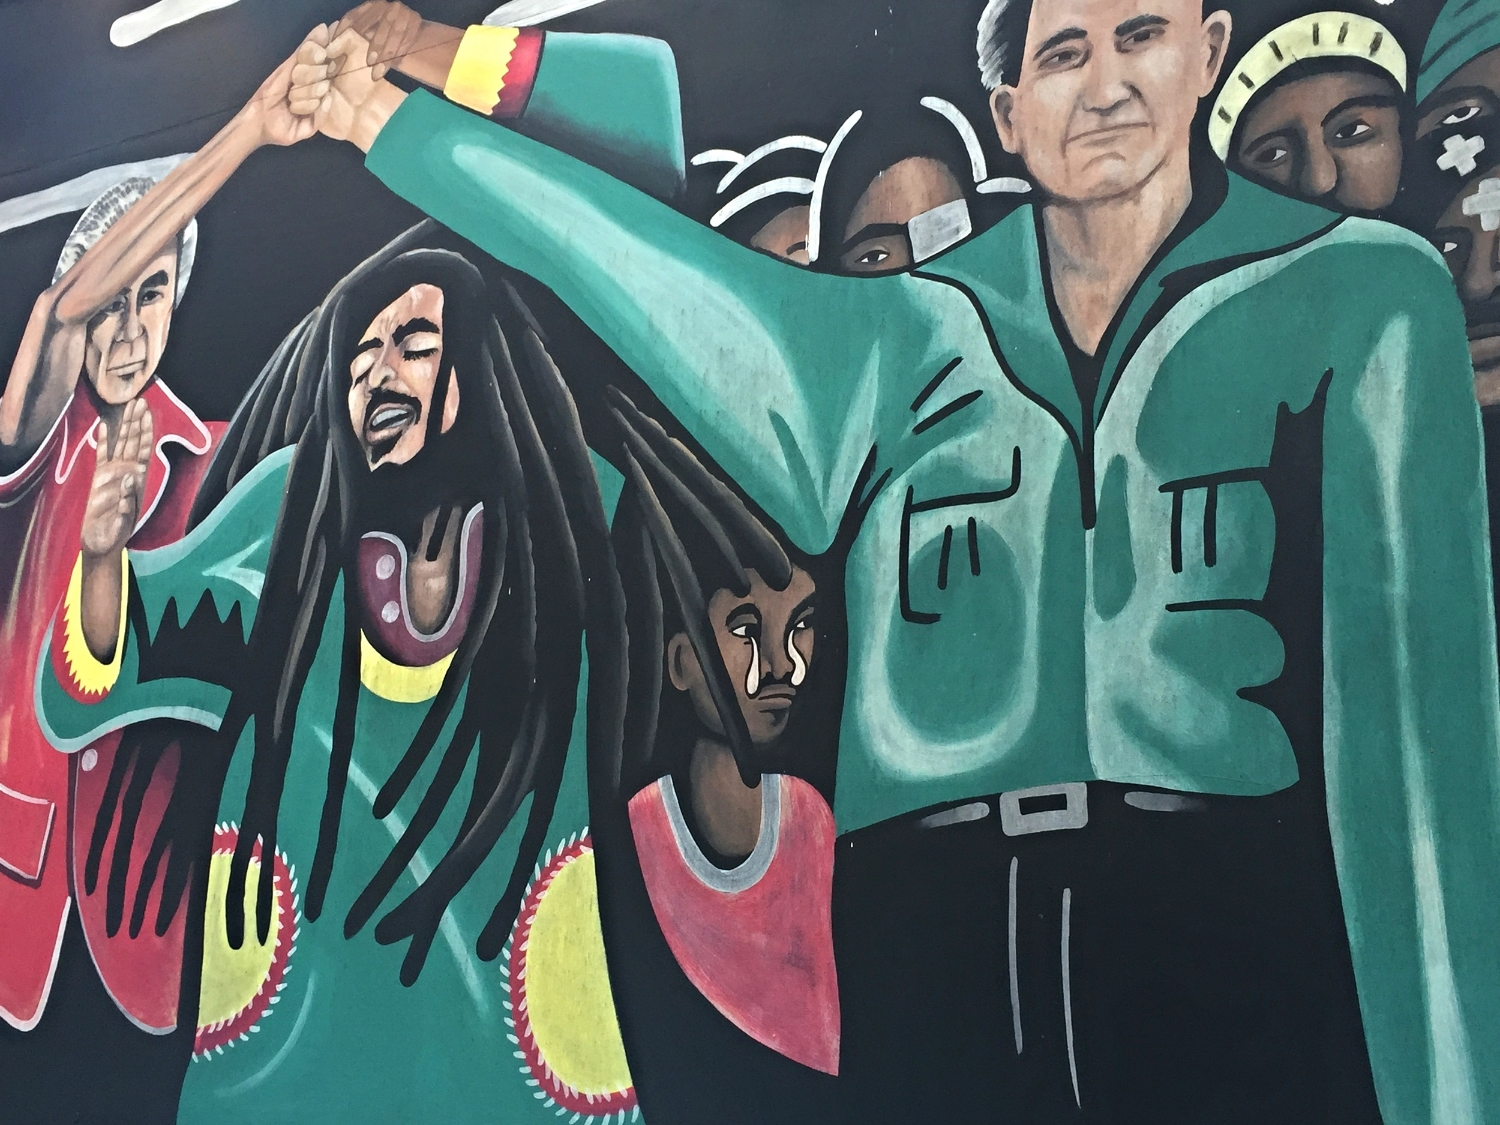 Mural Close Up at Bob Marley A Tribute to Freedom